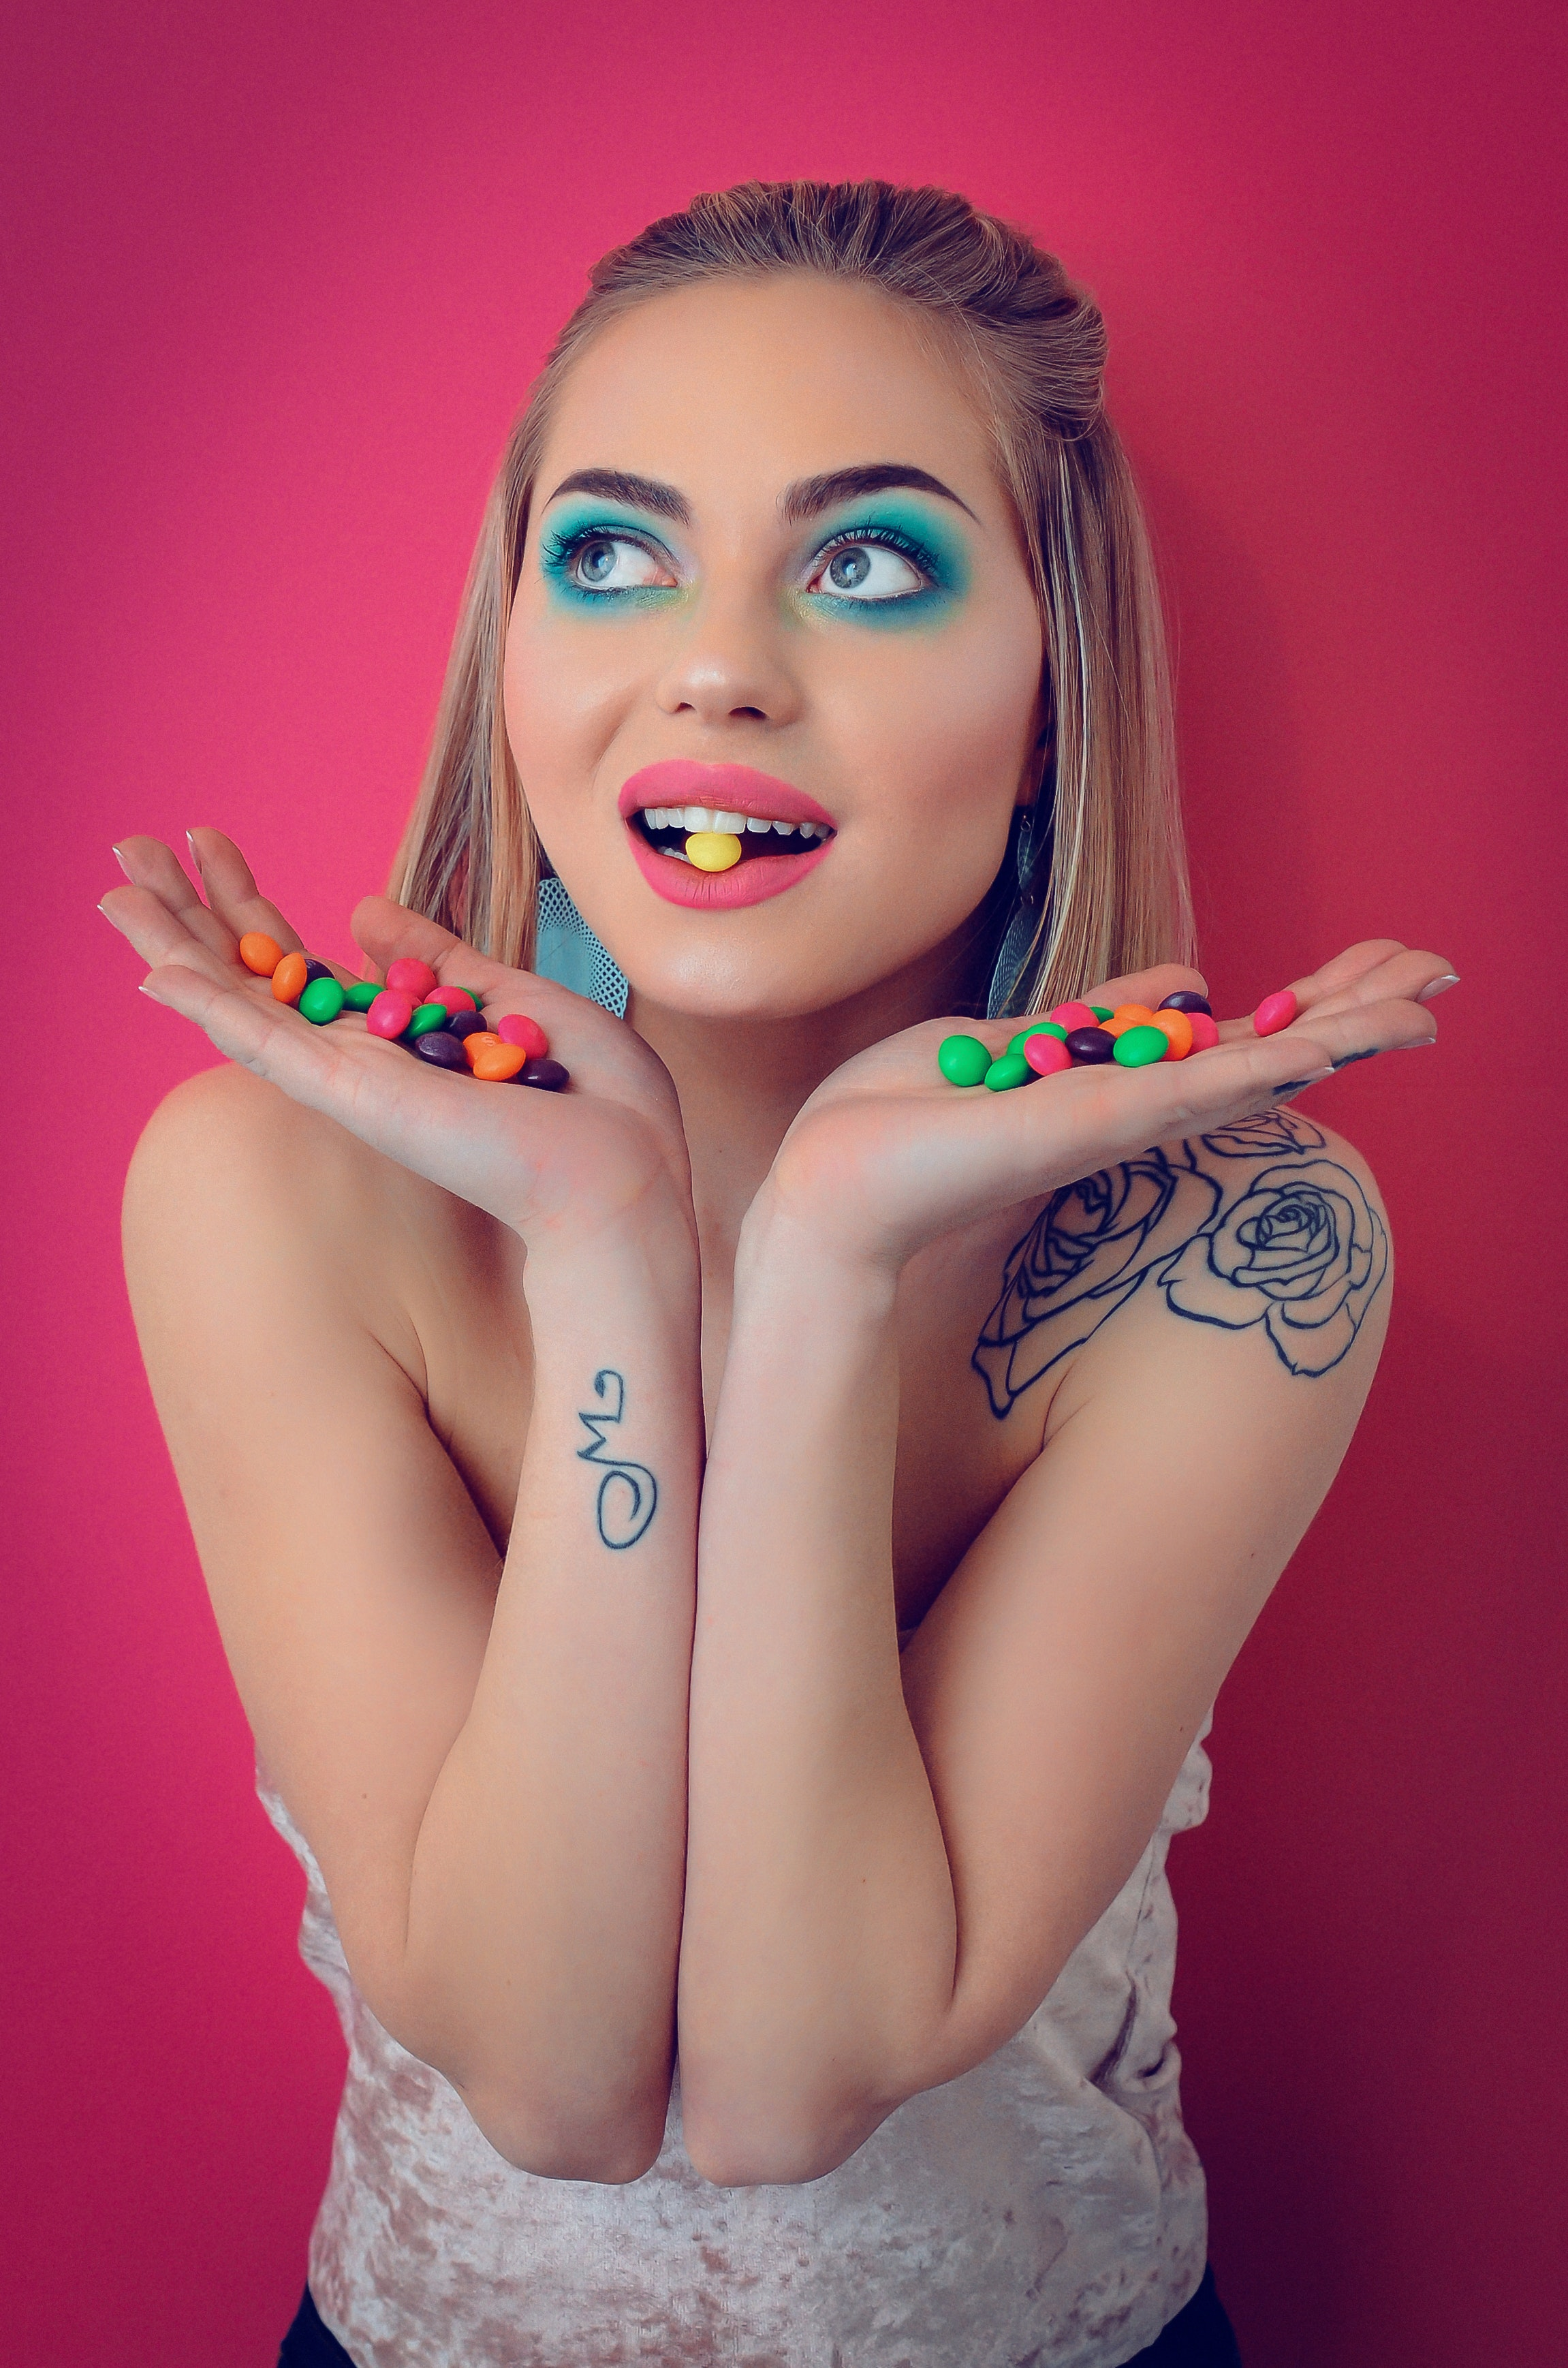 Woman in white shirt with candies on her hand photo